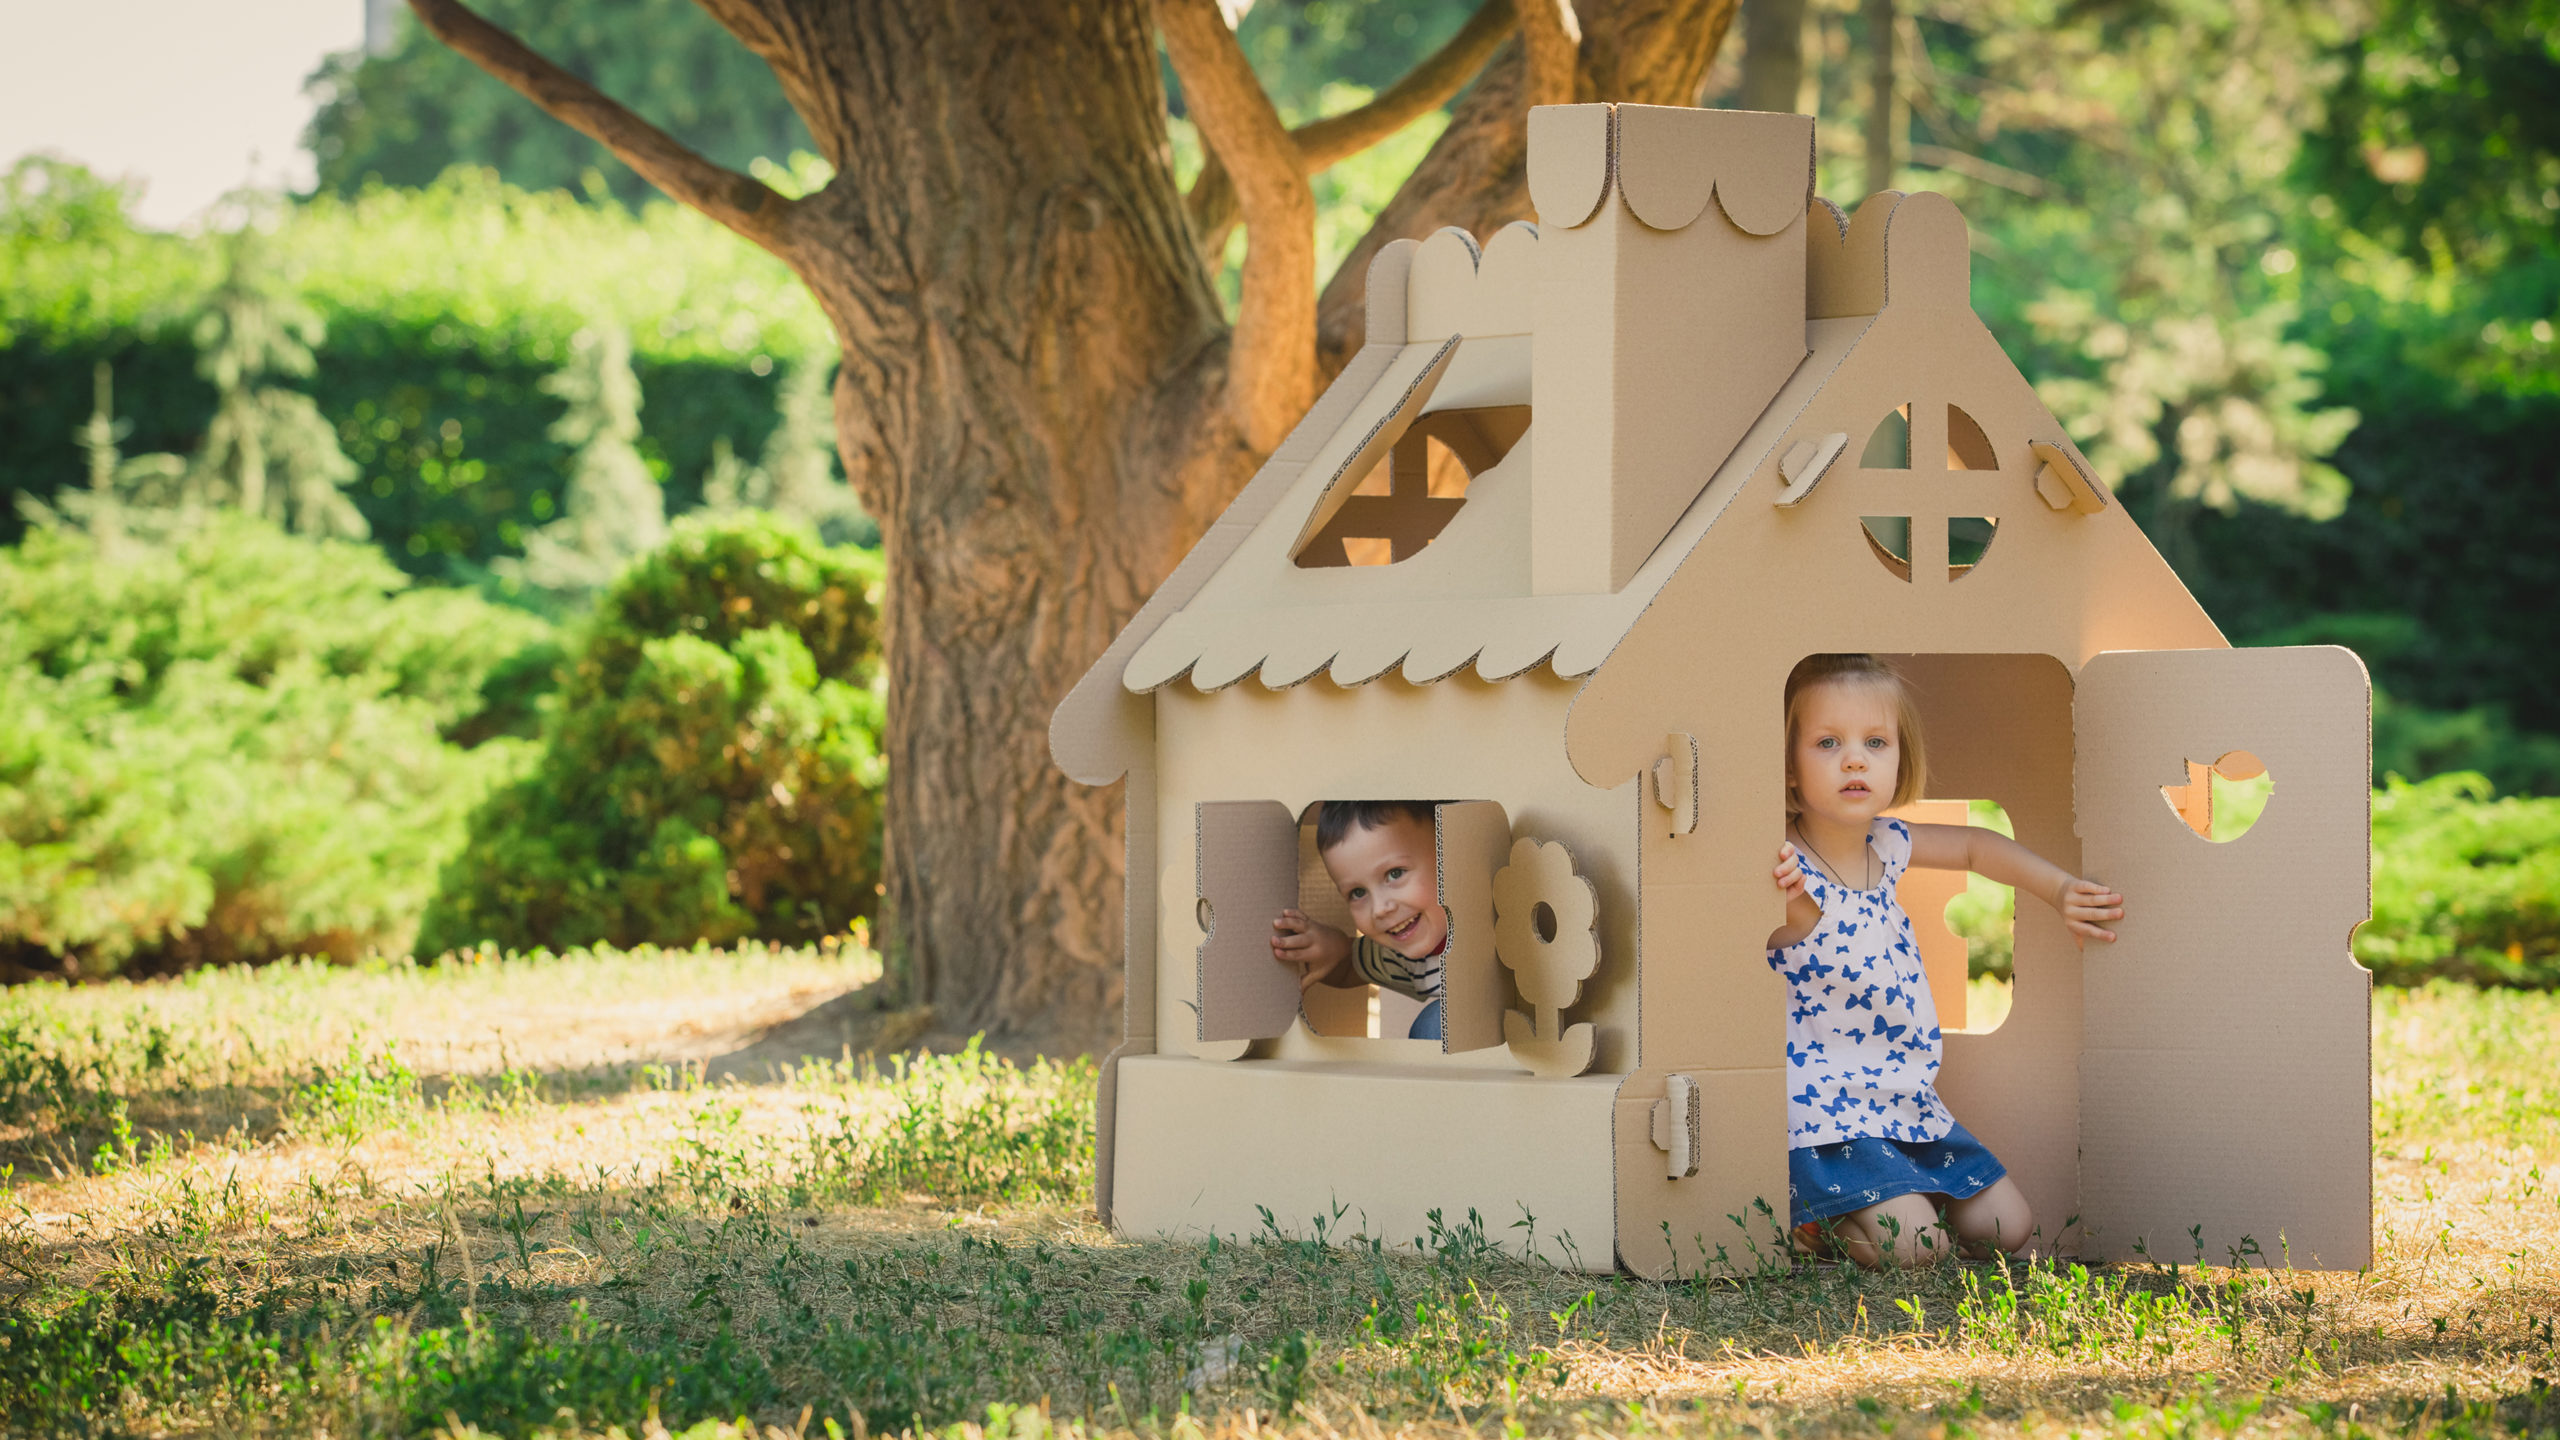 Are Your Kids Safe in Your Backyard? Use These Tips